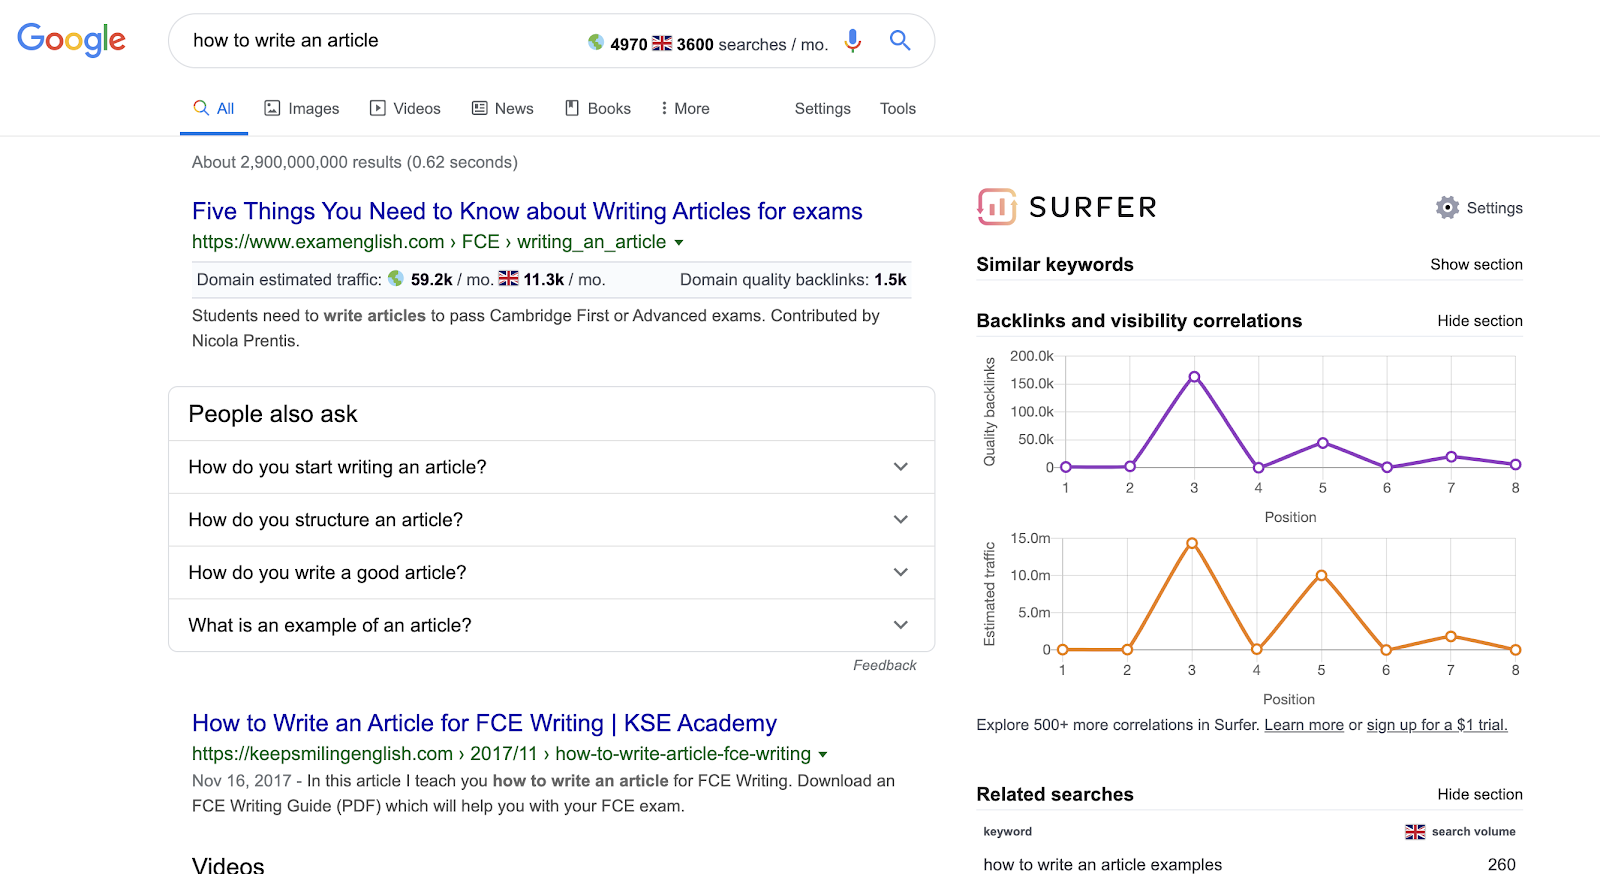 SurferSEO Keyword Surfer